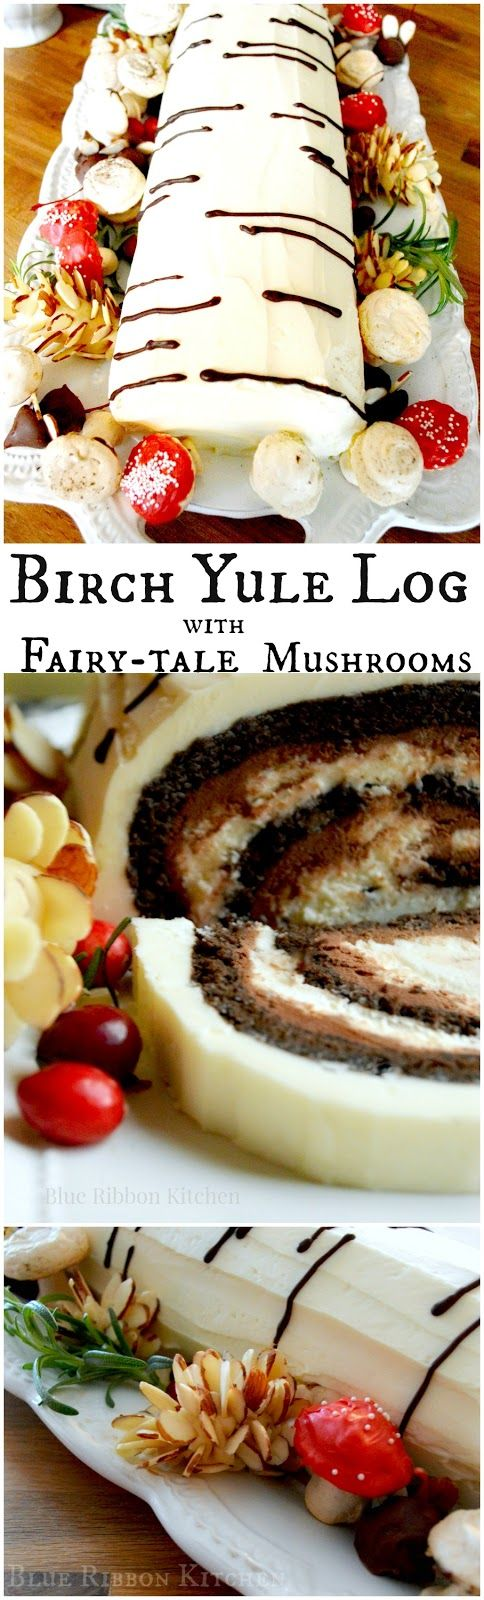 Blue Ribbon Kitchen: Dashing Through A Winter Wonderland: Yule Log Recipe | This Buche de Noel or Yule log is a festive snowy birch log with fairy-tale mushrooms; the perfect ending to your holiday celebration! Recipe on the blog.